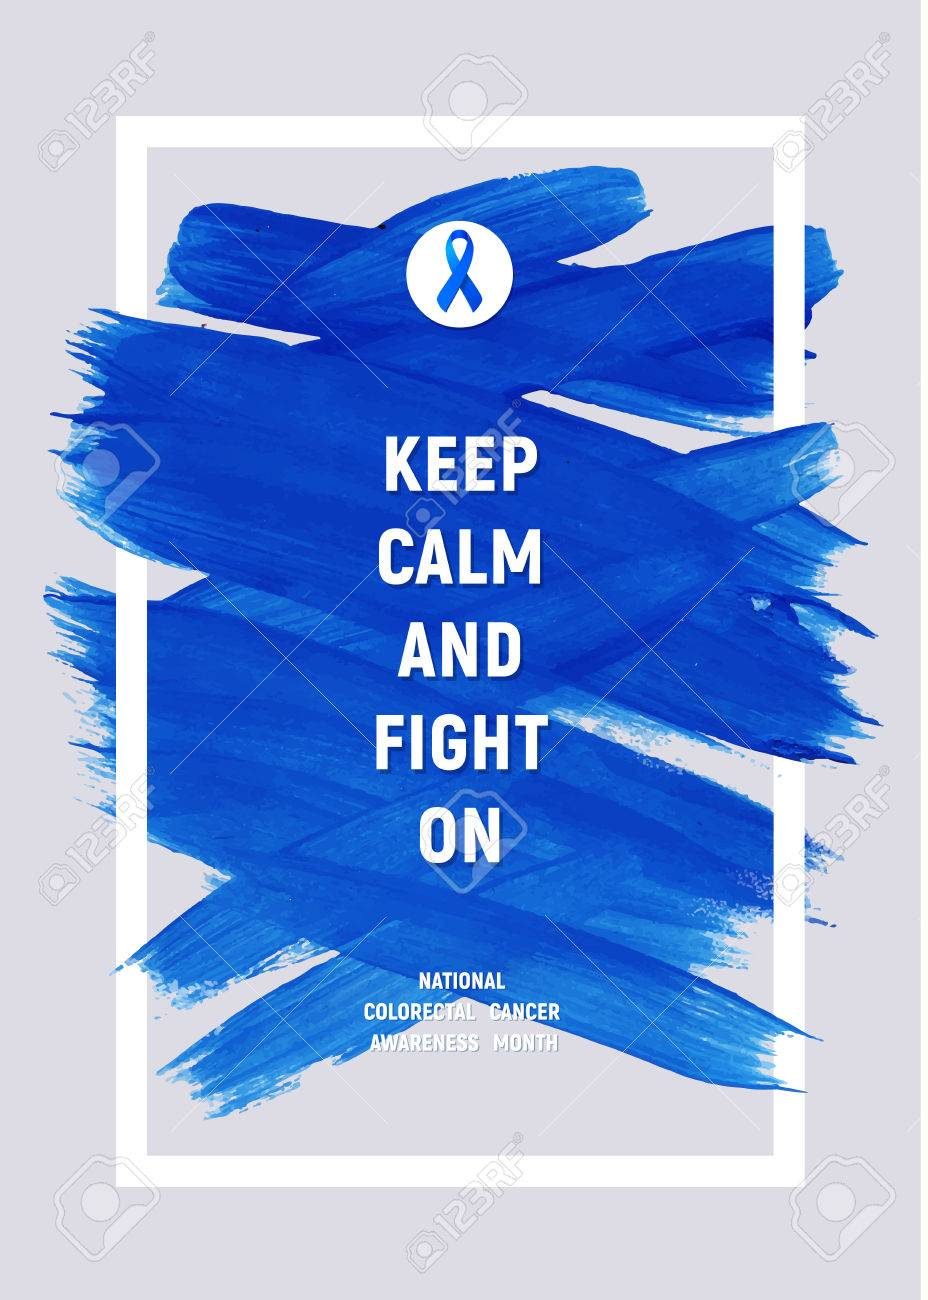 Clorectal Cancer Awareness Creative Grey And Blue Poster Brush Royalty Free Cliparts Vectors And Stock Illustration Image 72698665